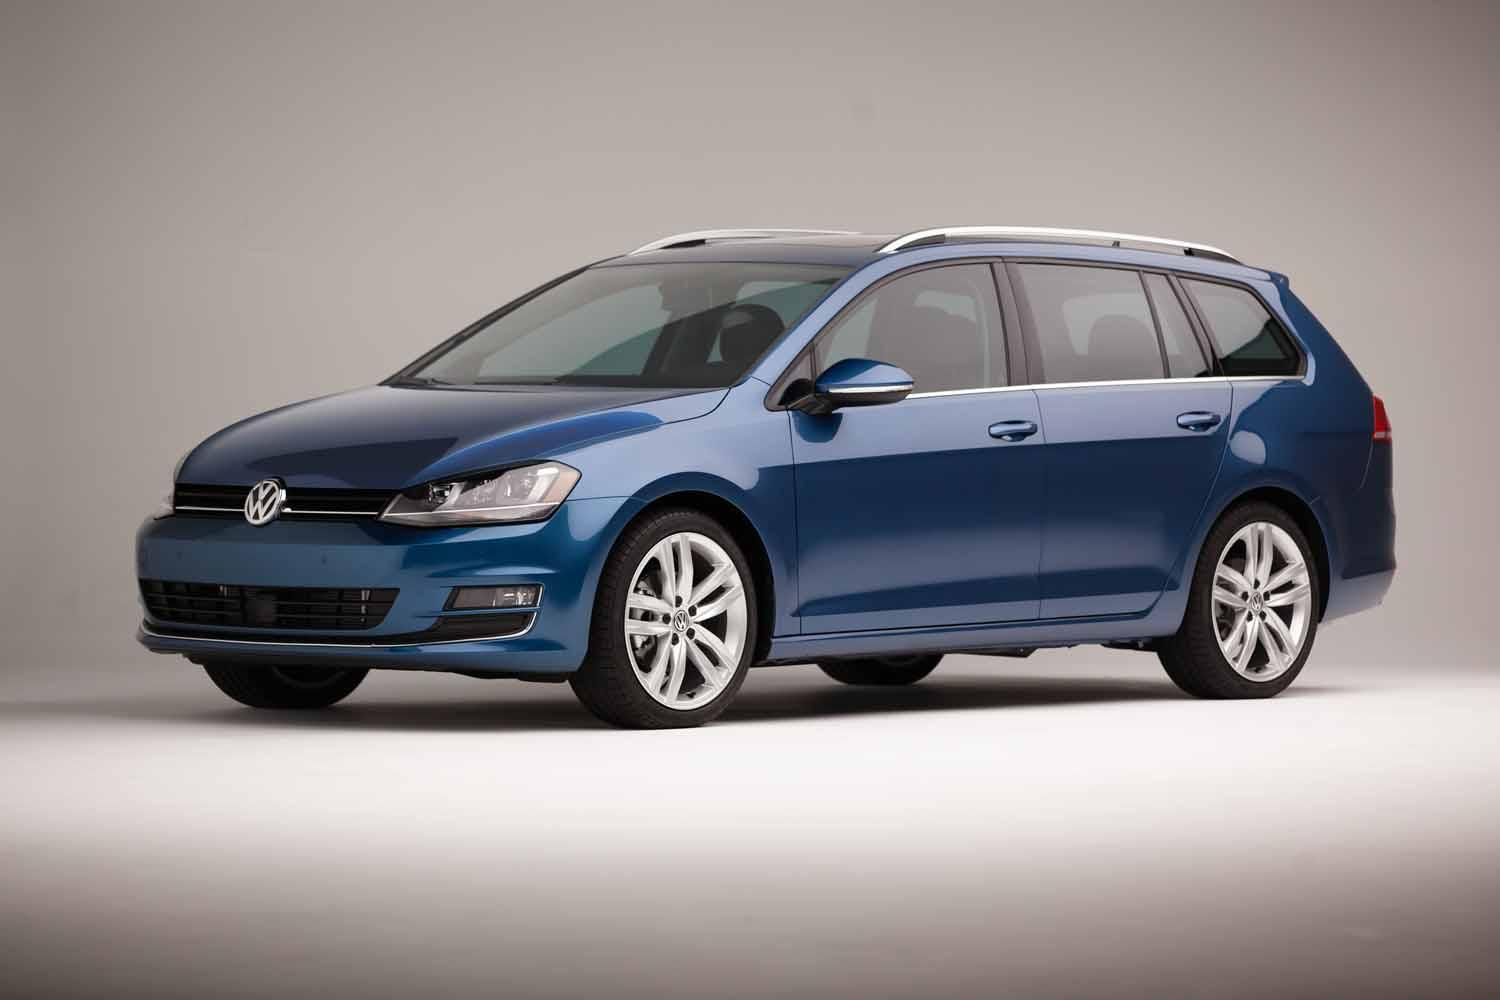 don t call it a jetta volkswagen prices 2015 golf sportwagen. Black Bedroom Furniture Sets. Home Design Ideas